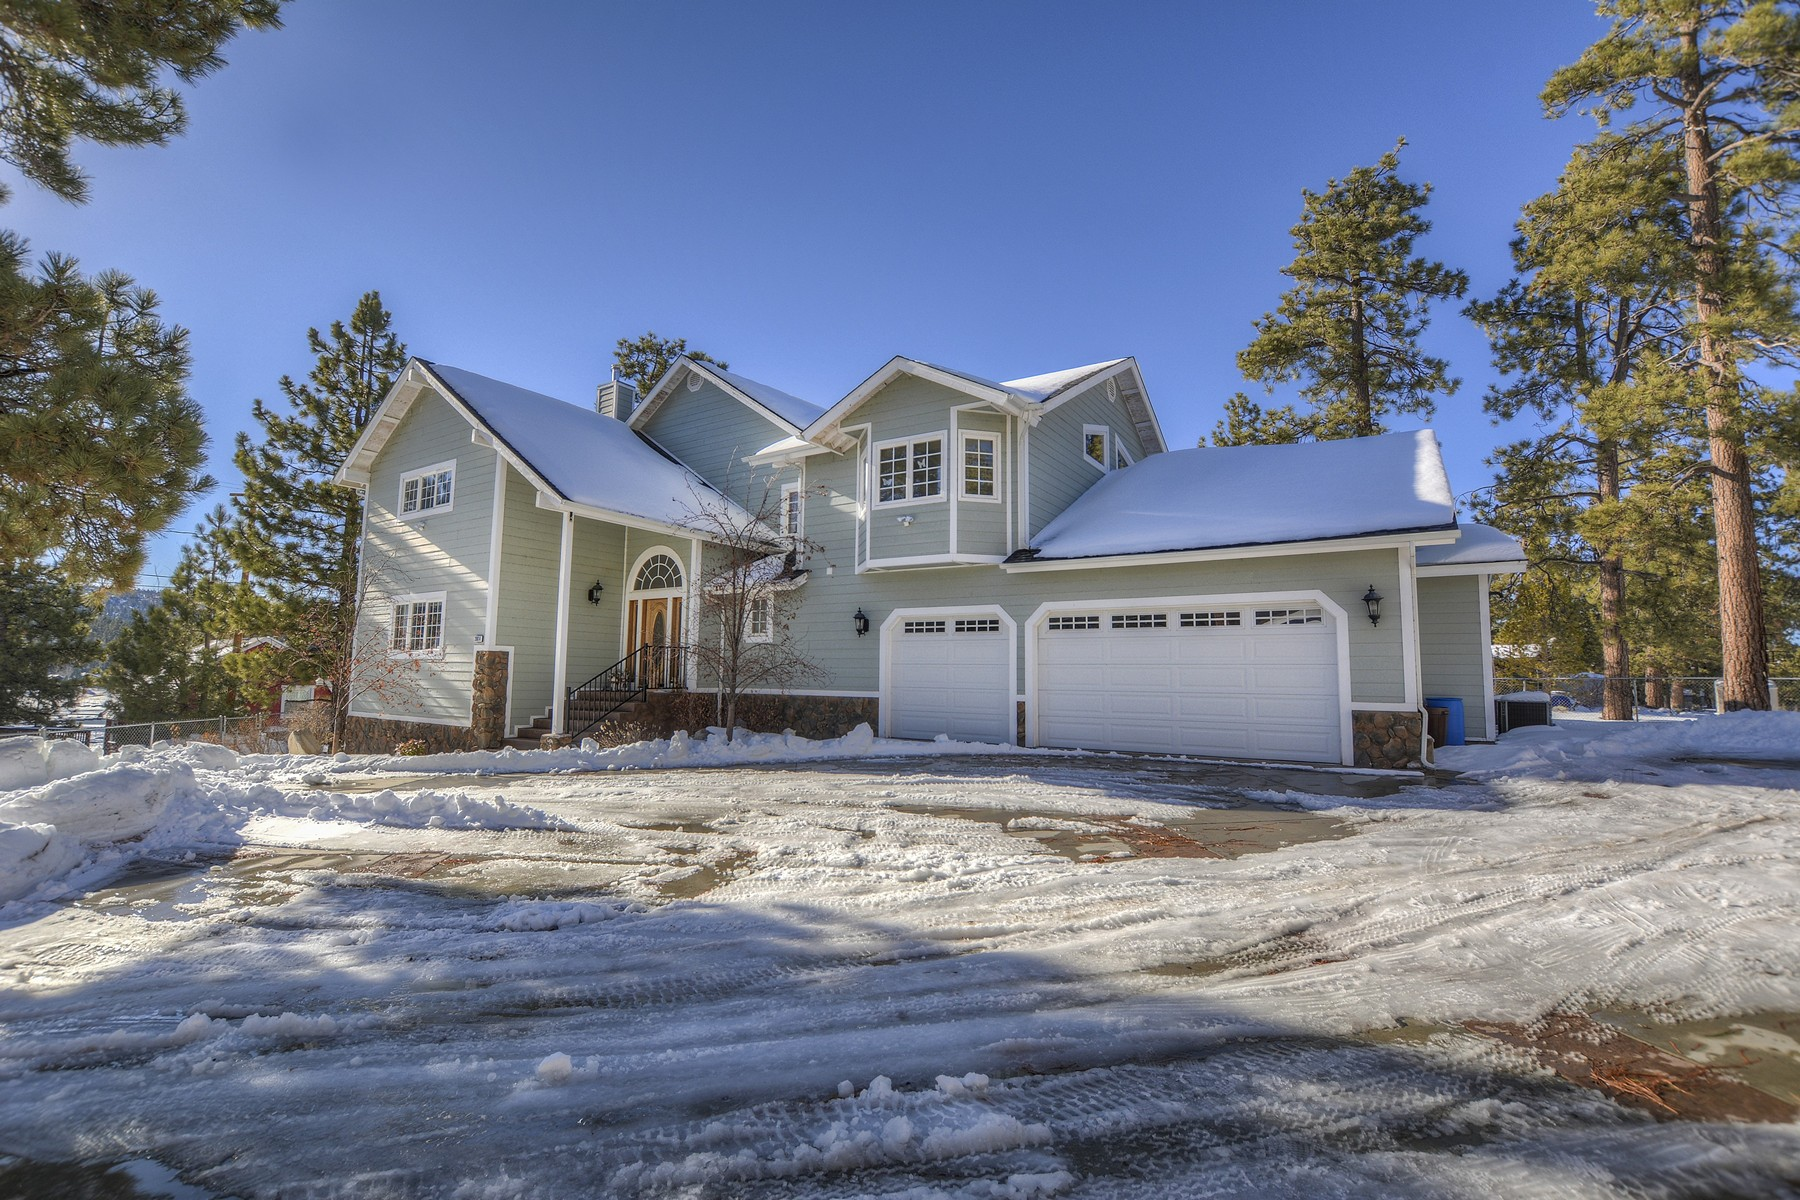 Single Family Home for Sale at Big Bear 39614 Lake Drive Big Bear Lake, California, 92315 United States